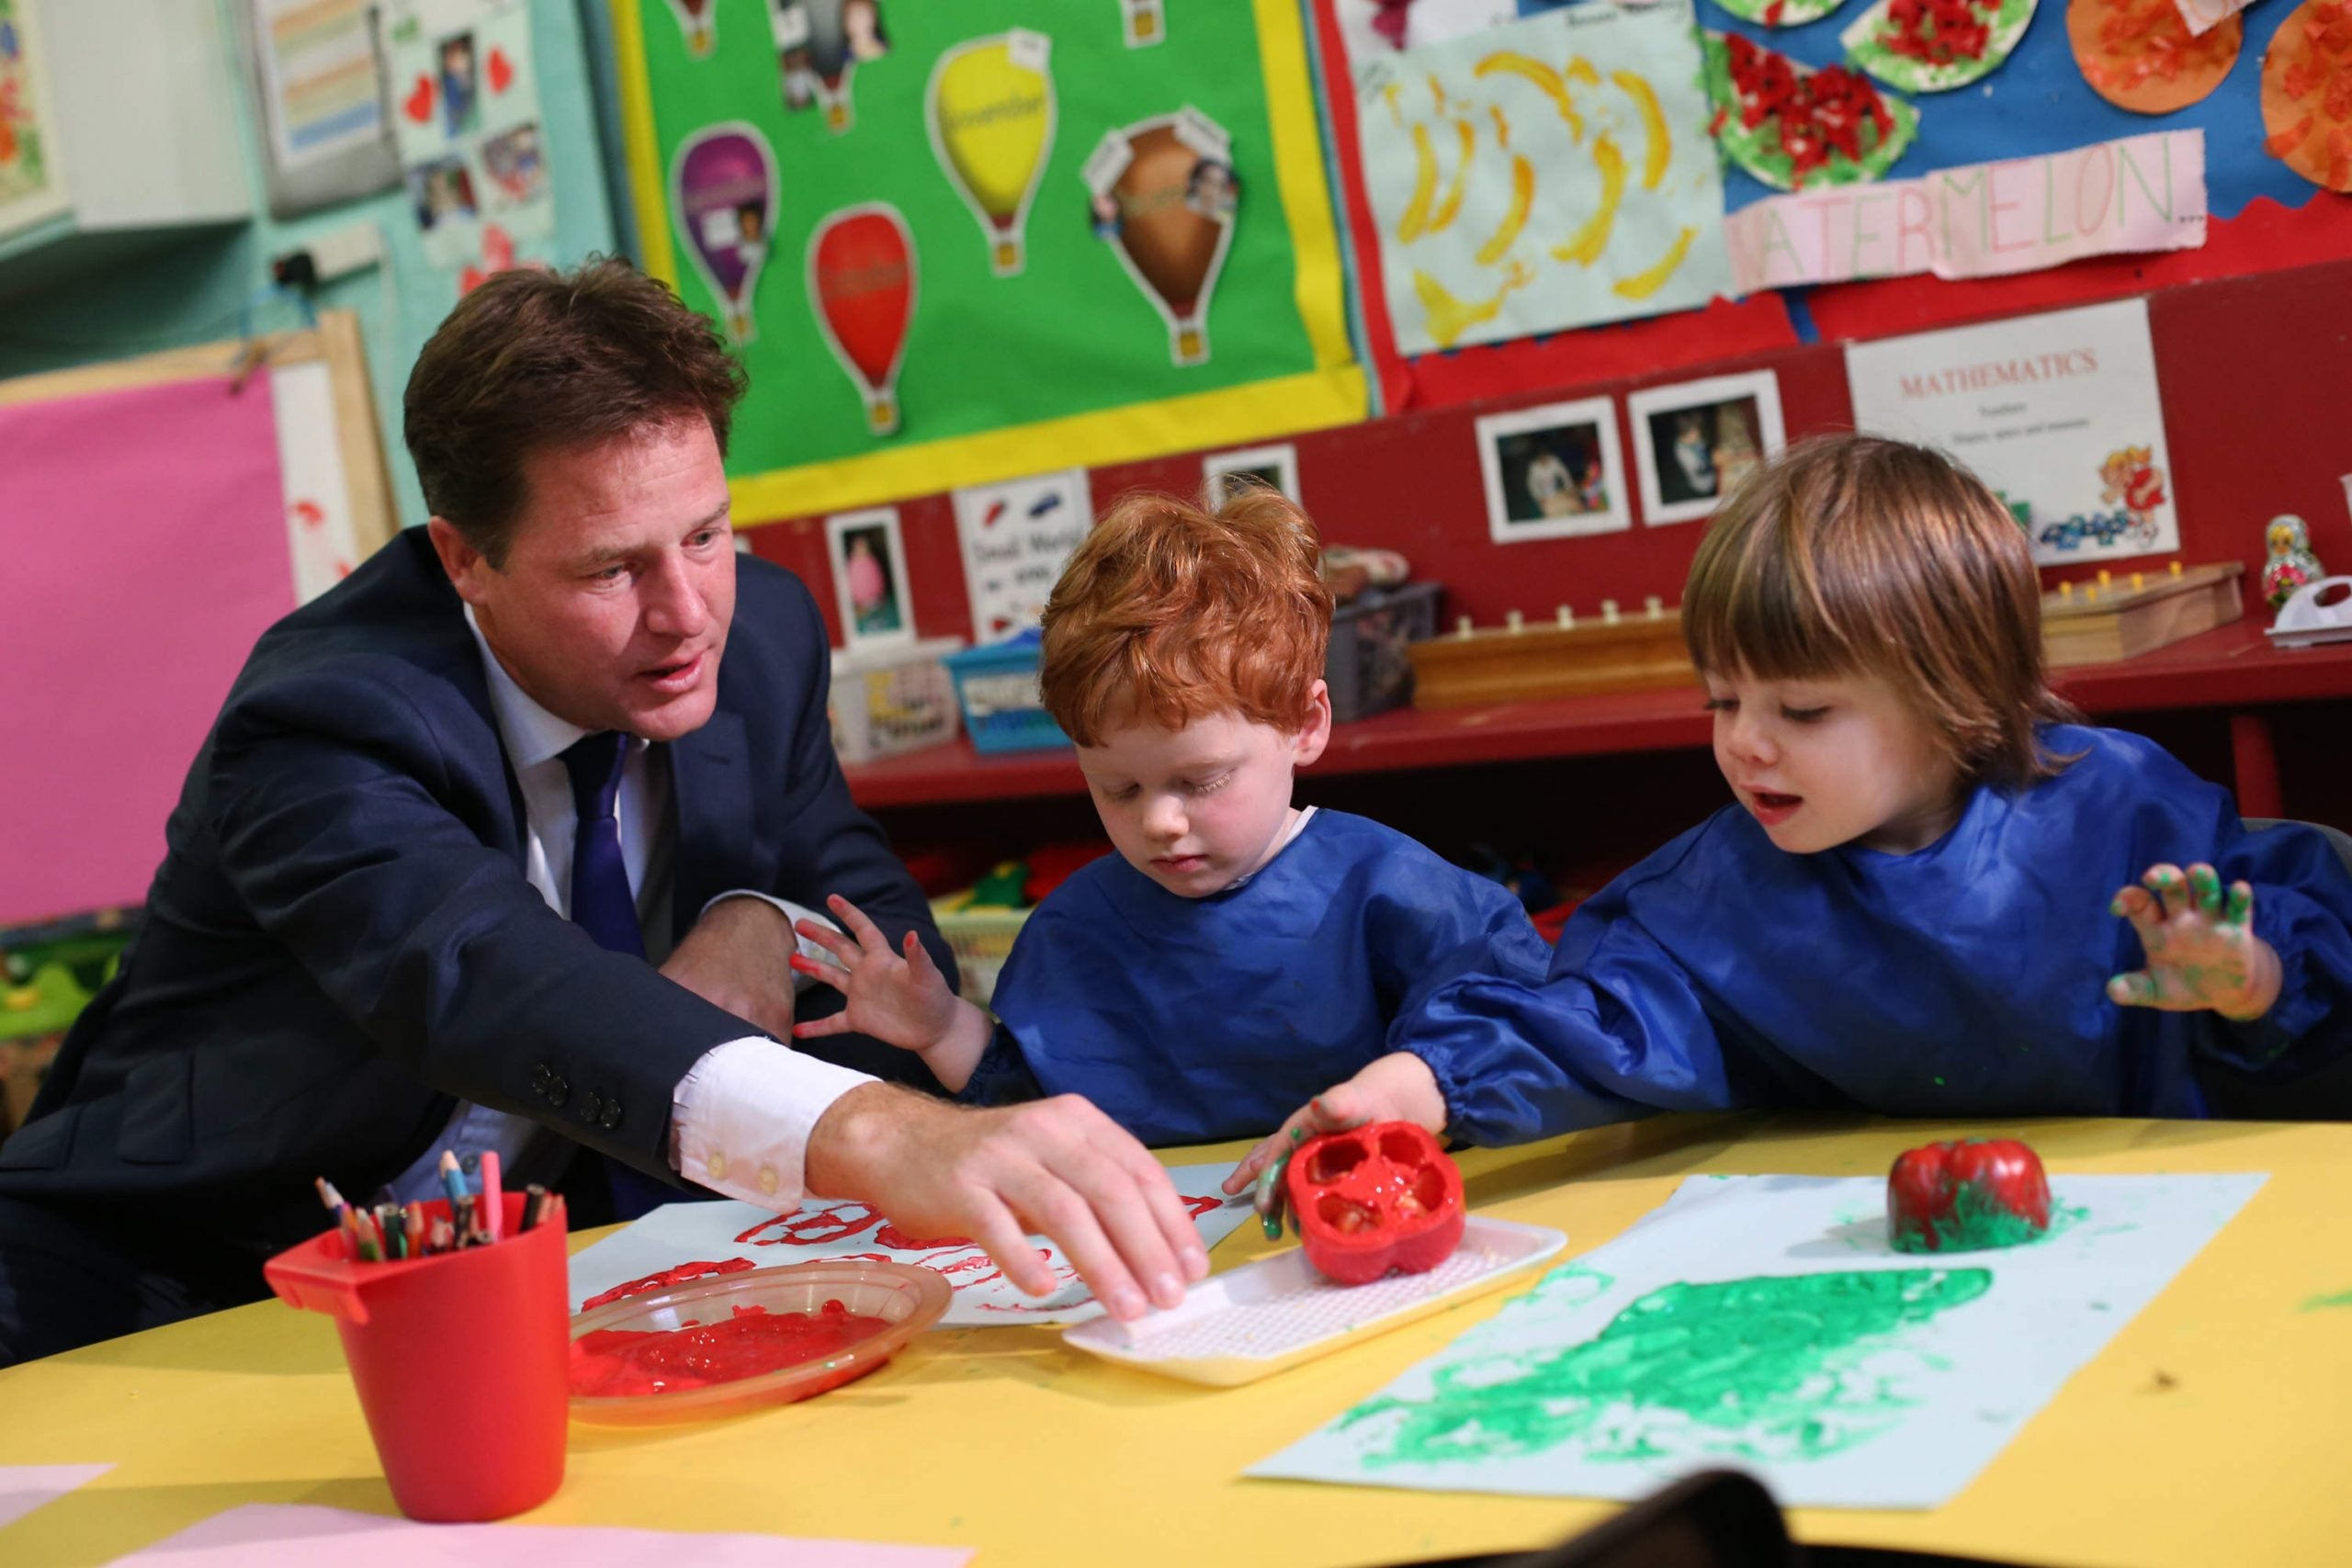 To solve the living standards crisis, all parties need to go much further on childcare